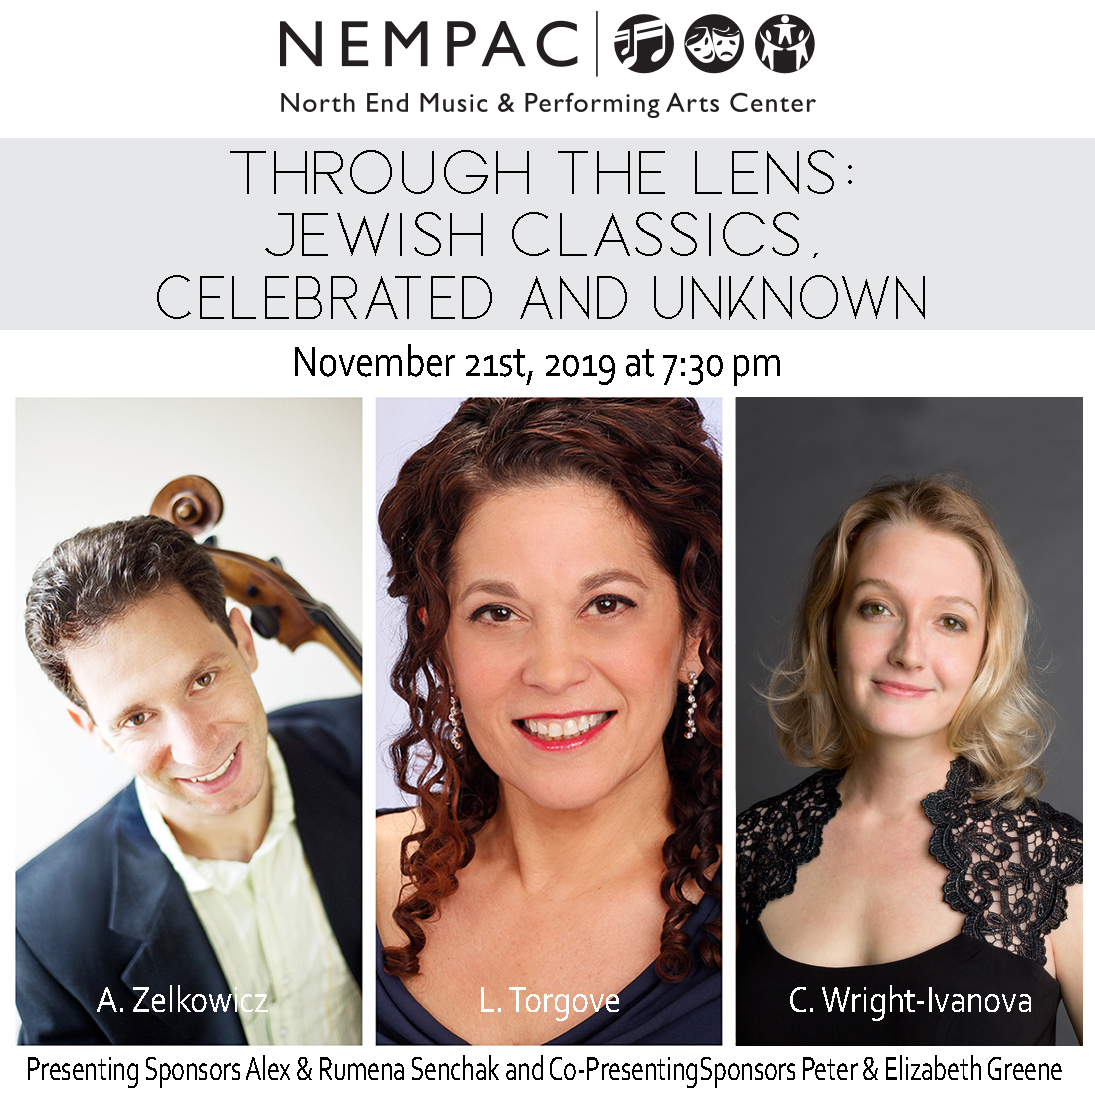 Through the Lens: Jewish Classics, Celebrated and Unknown